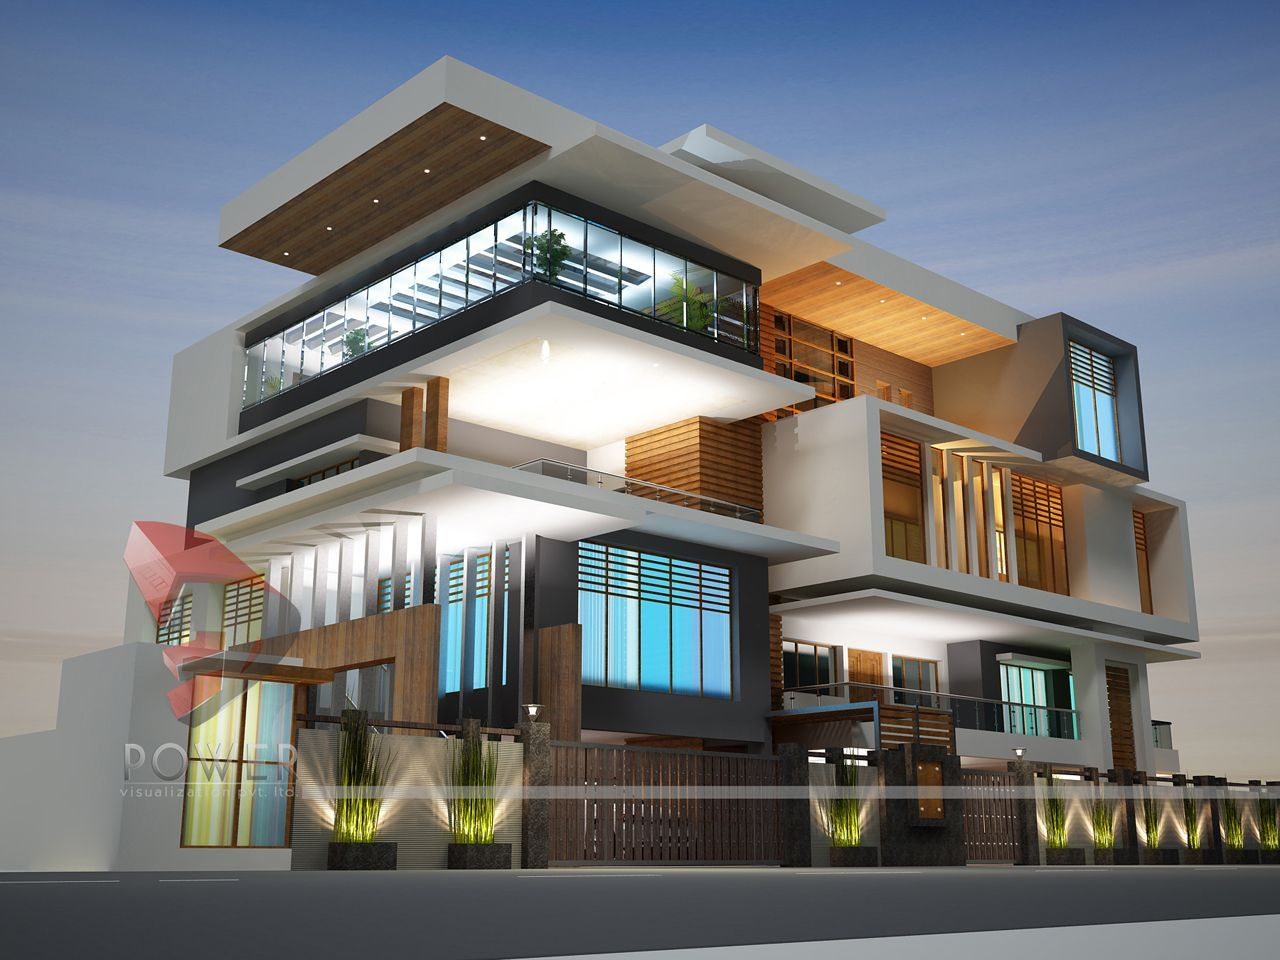 Modern house design in india architecture india modern Contemporary home construction